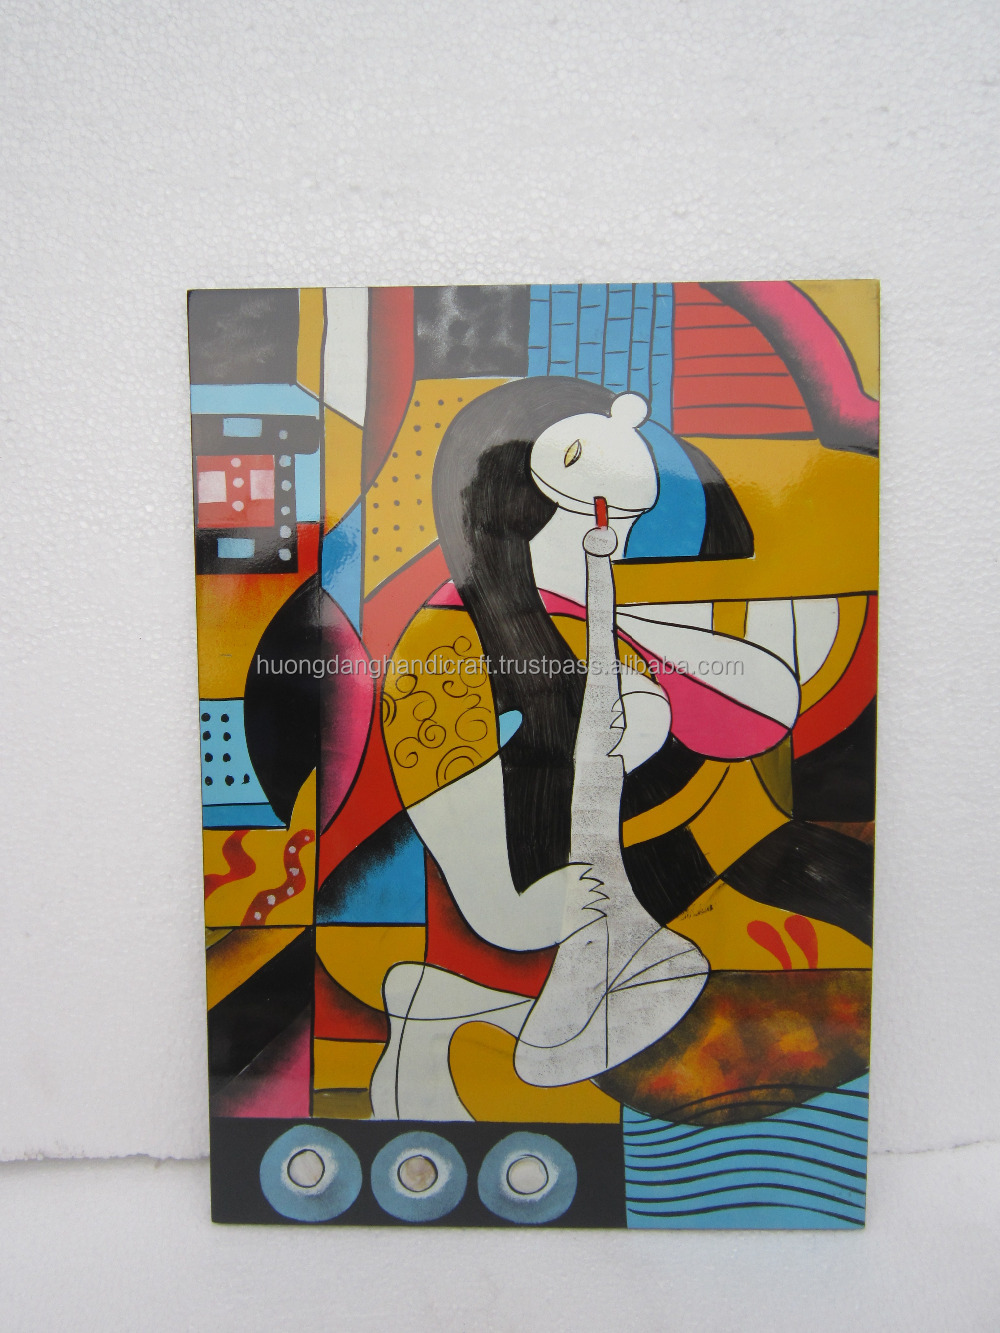 vietnamese lacquer paintings/ high quality products/material from nature/ made in Viet Nam